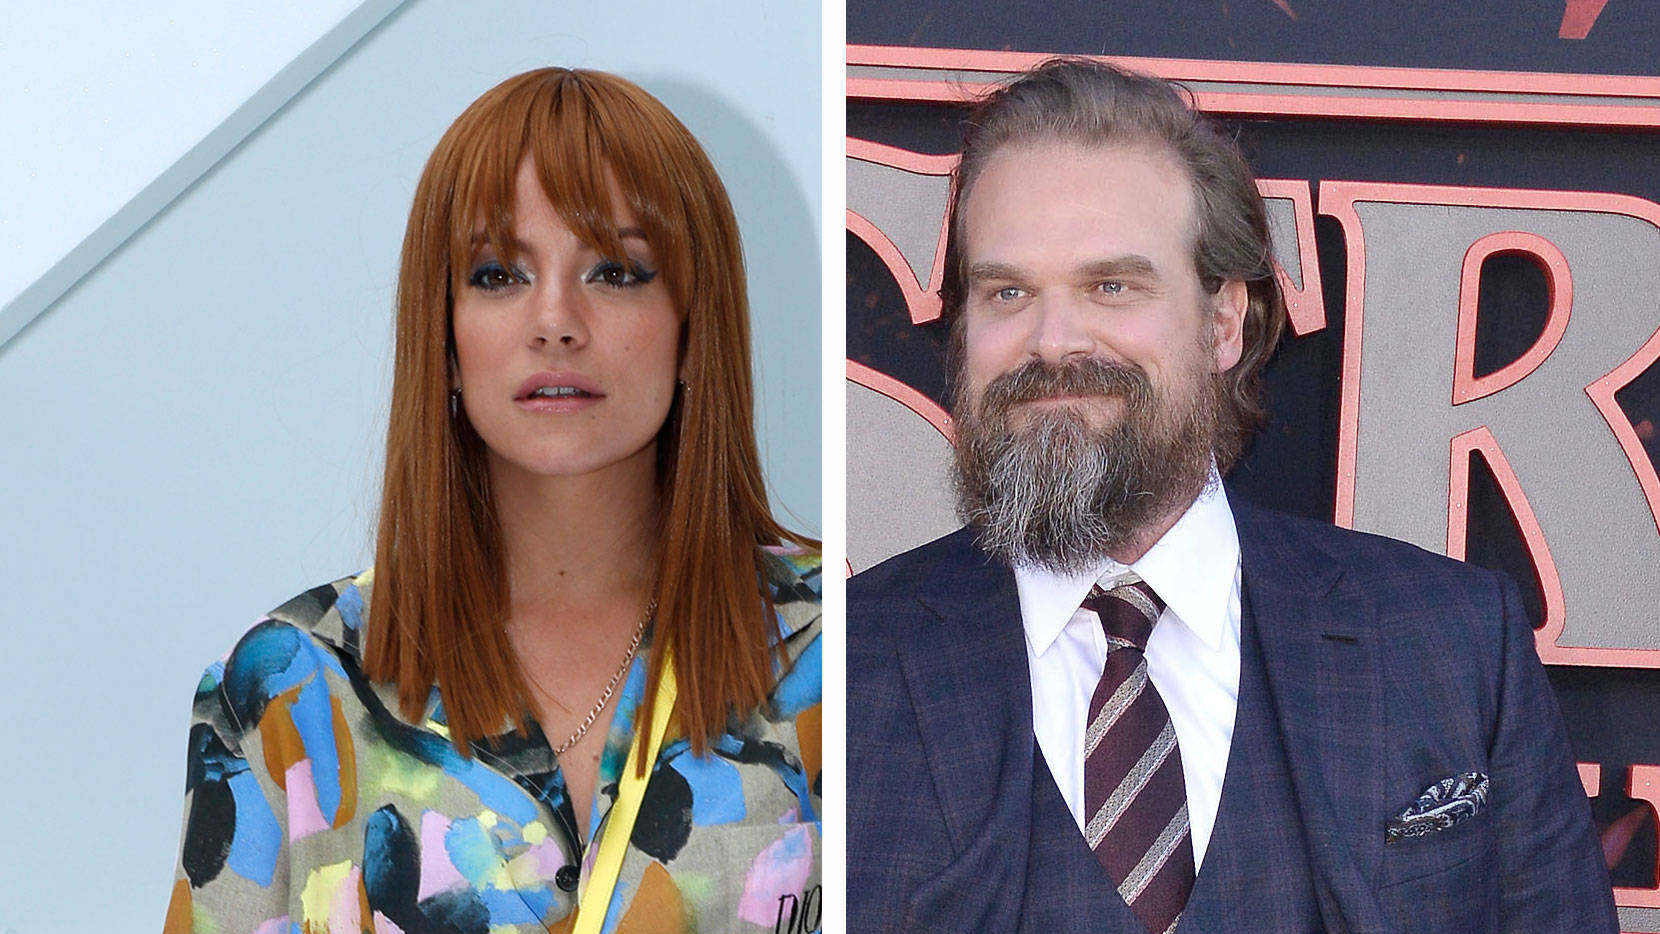 PHOTO: Lily Allen & Stranger Things' David Harbour confirm romance with public kiss